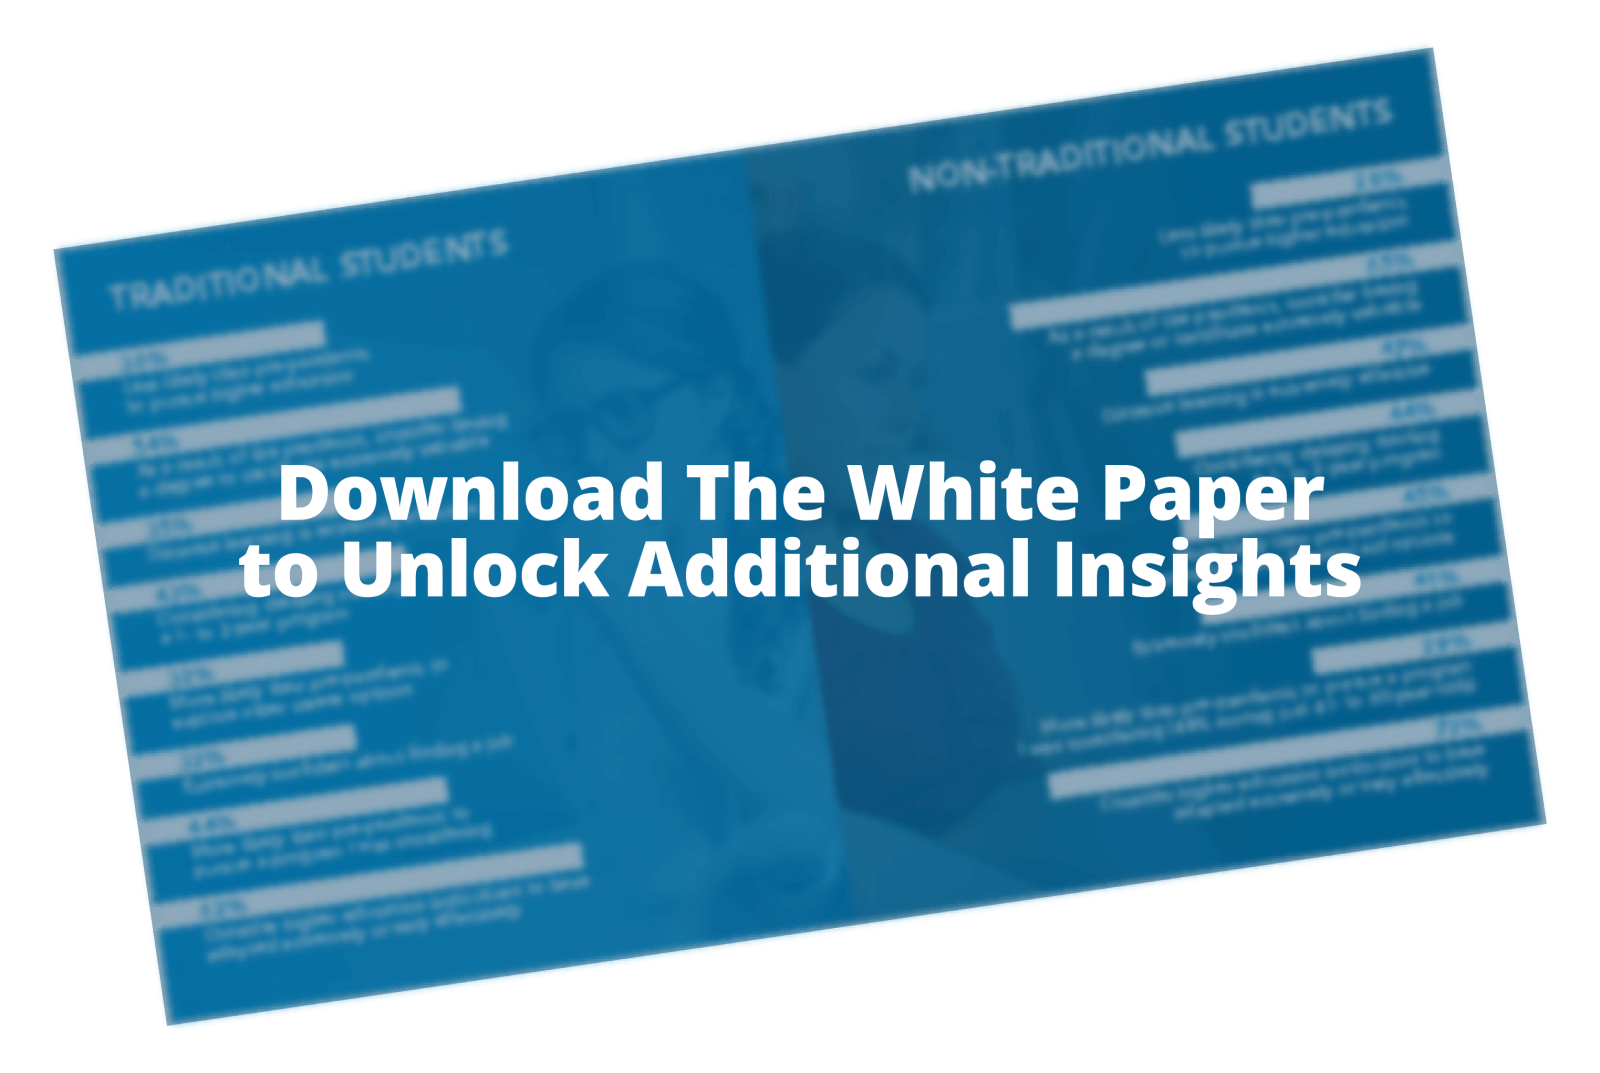 Download the white paper to unlock additional insights